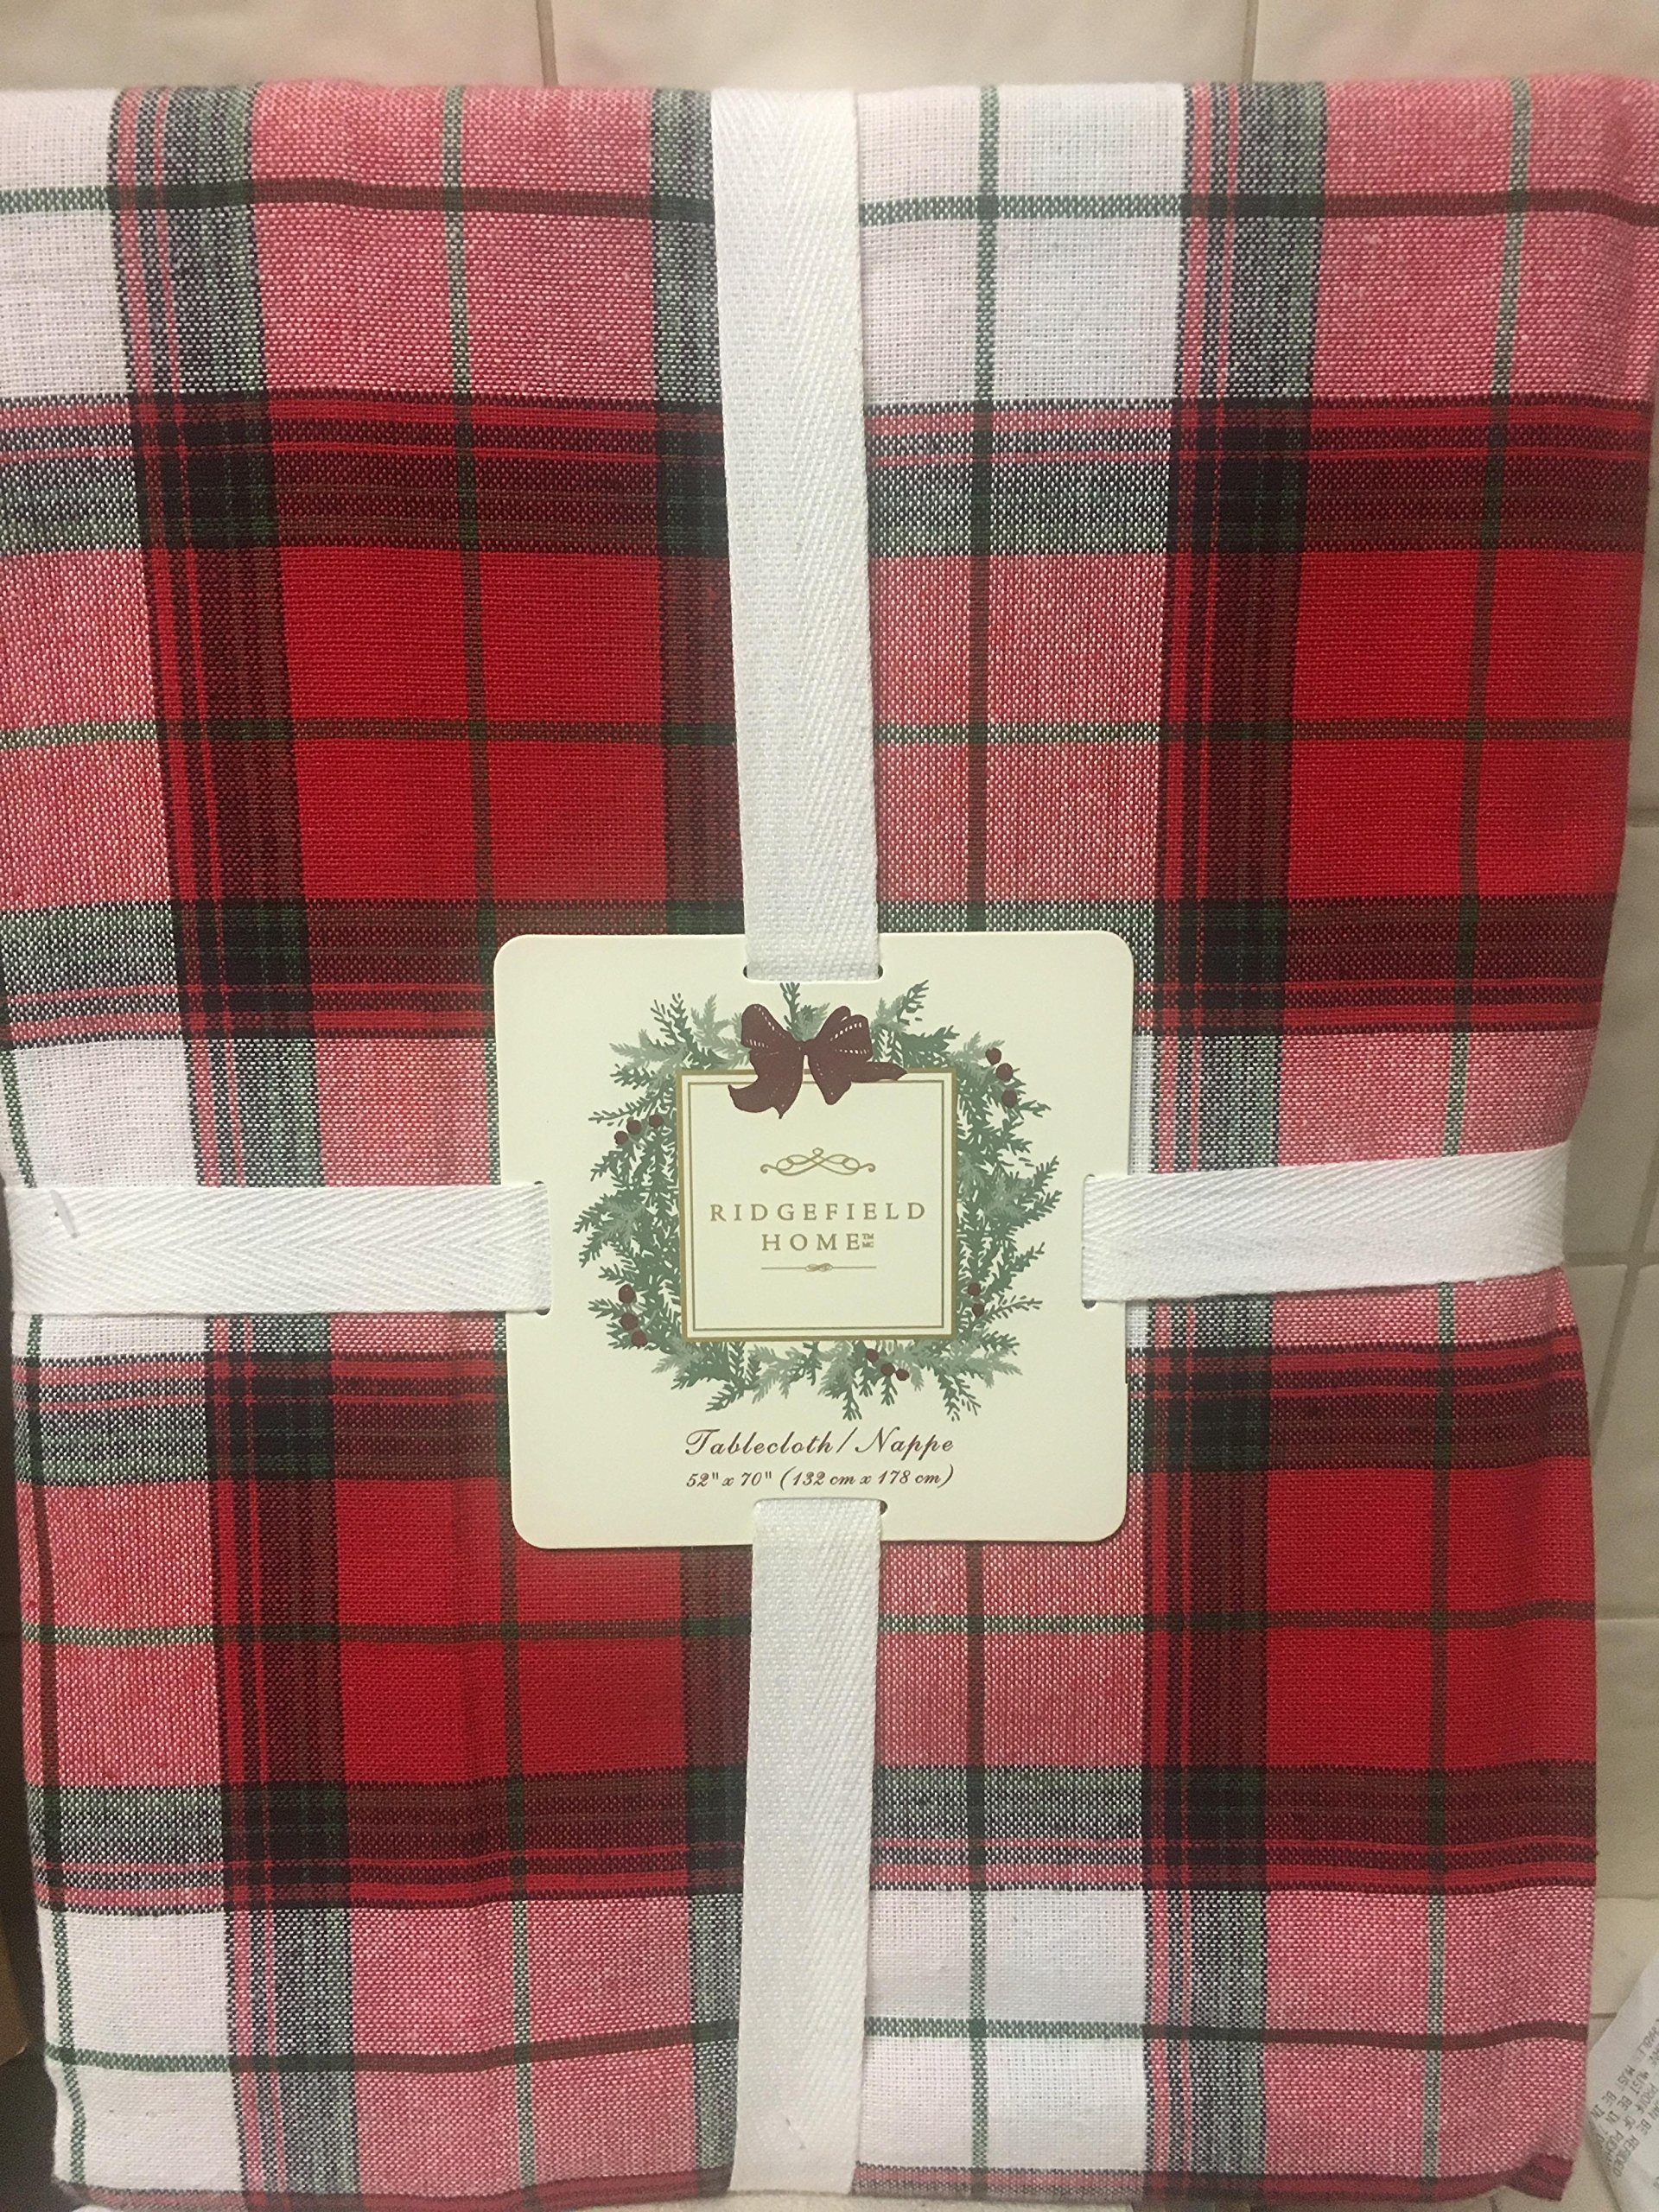 """Ridgefield Home Fabric Cotton Christmas Holiday Scottish Plaid Tartan Pattern Tablecloth Red Green White 52 x 70"""" Inches"""